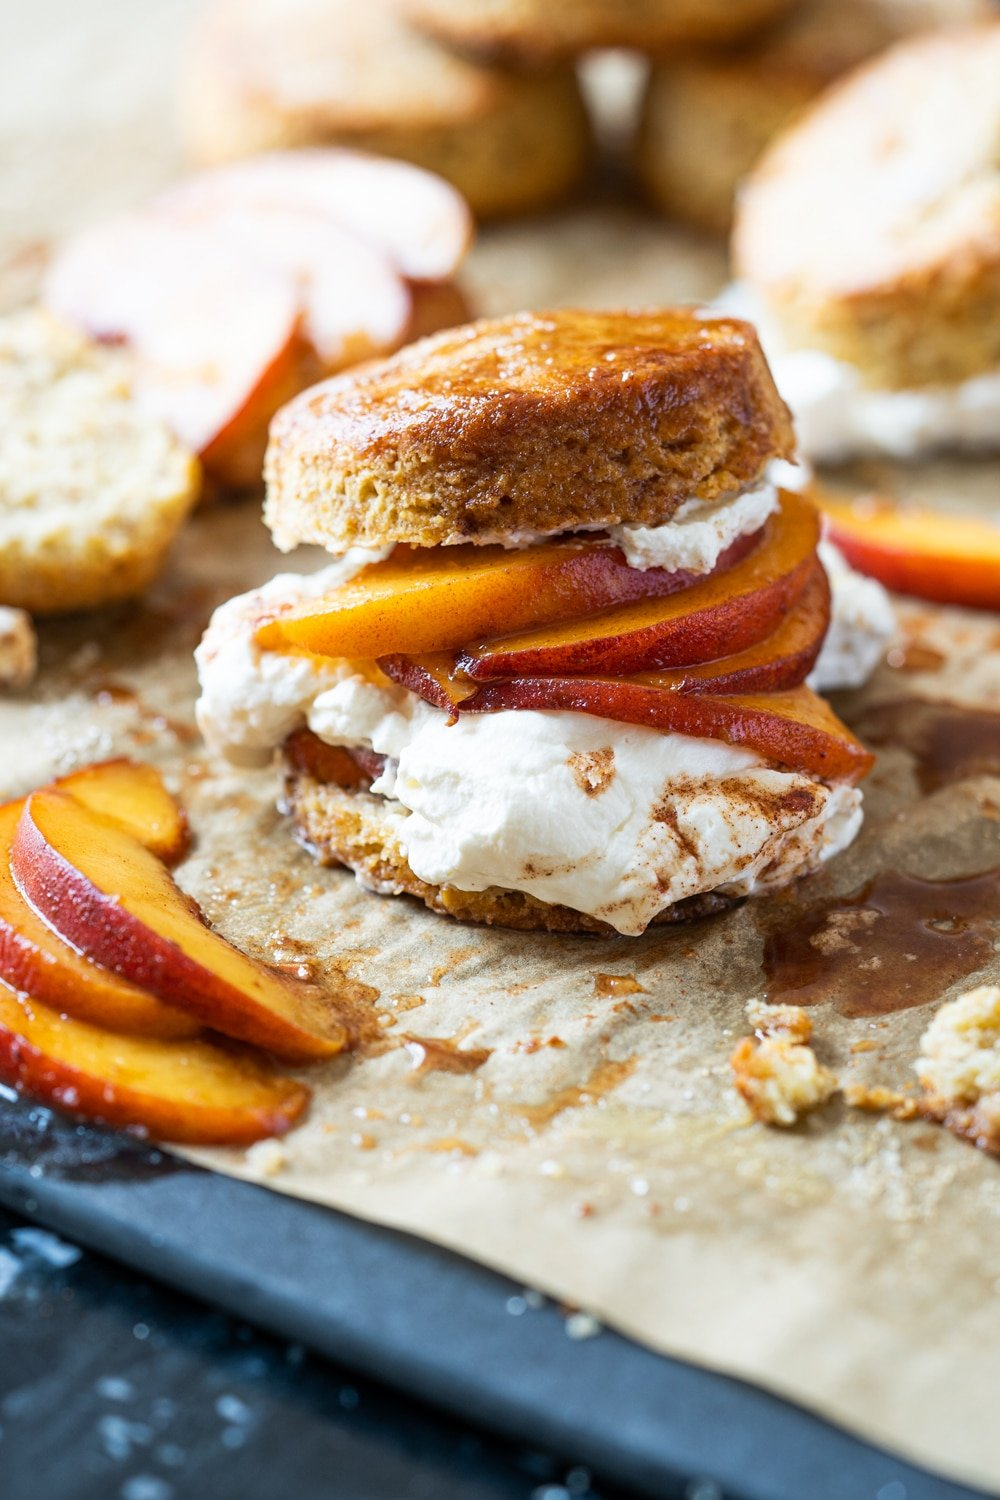 Keto peach shortcake with homemade maple whipped cream on brown parchment paper